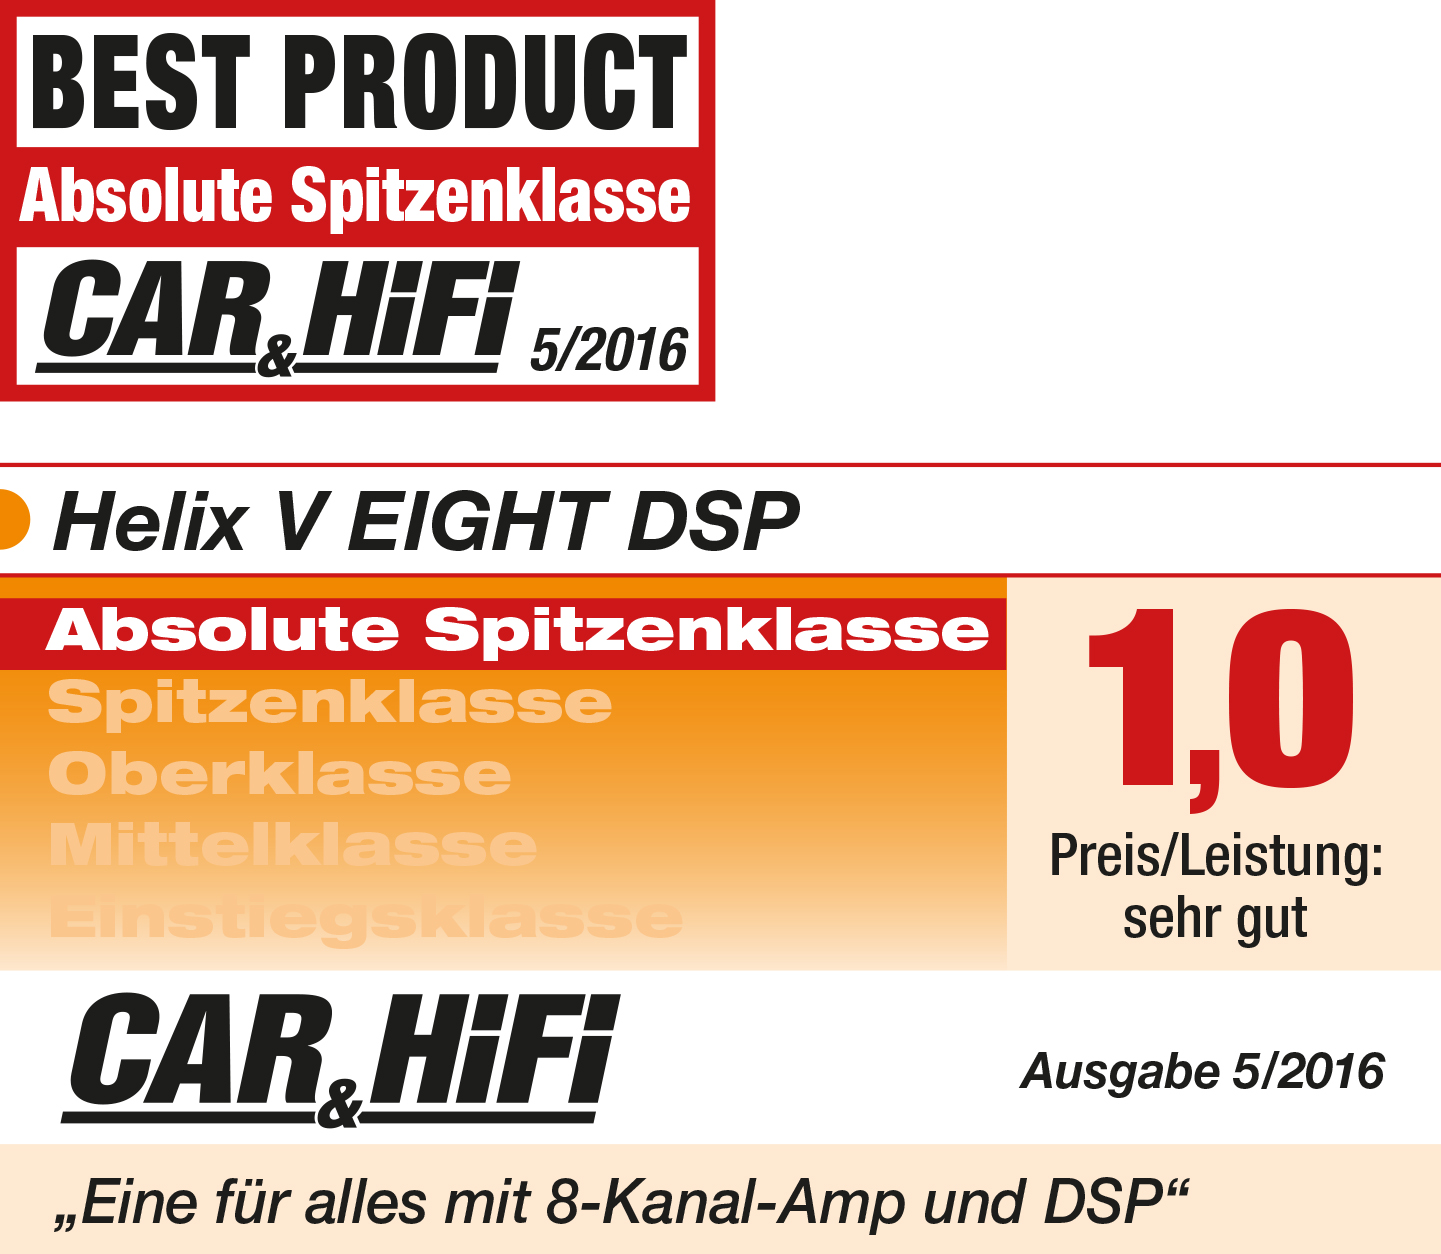 2016-05-Car-Hifi-Bewertung-HELIX-V-EIGHT-DSP